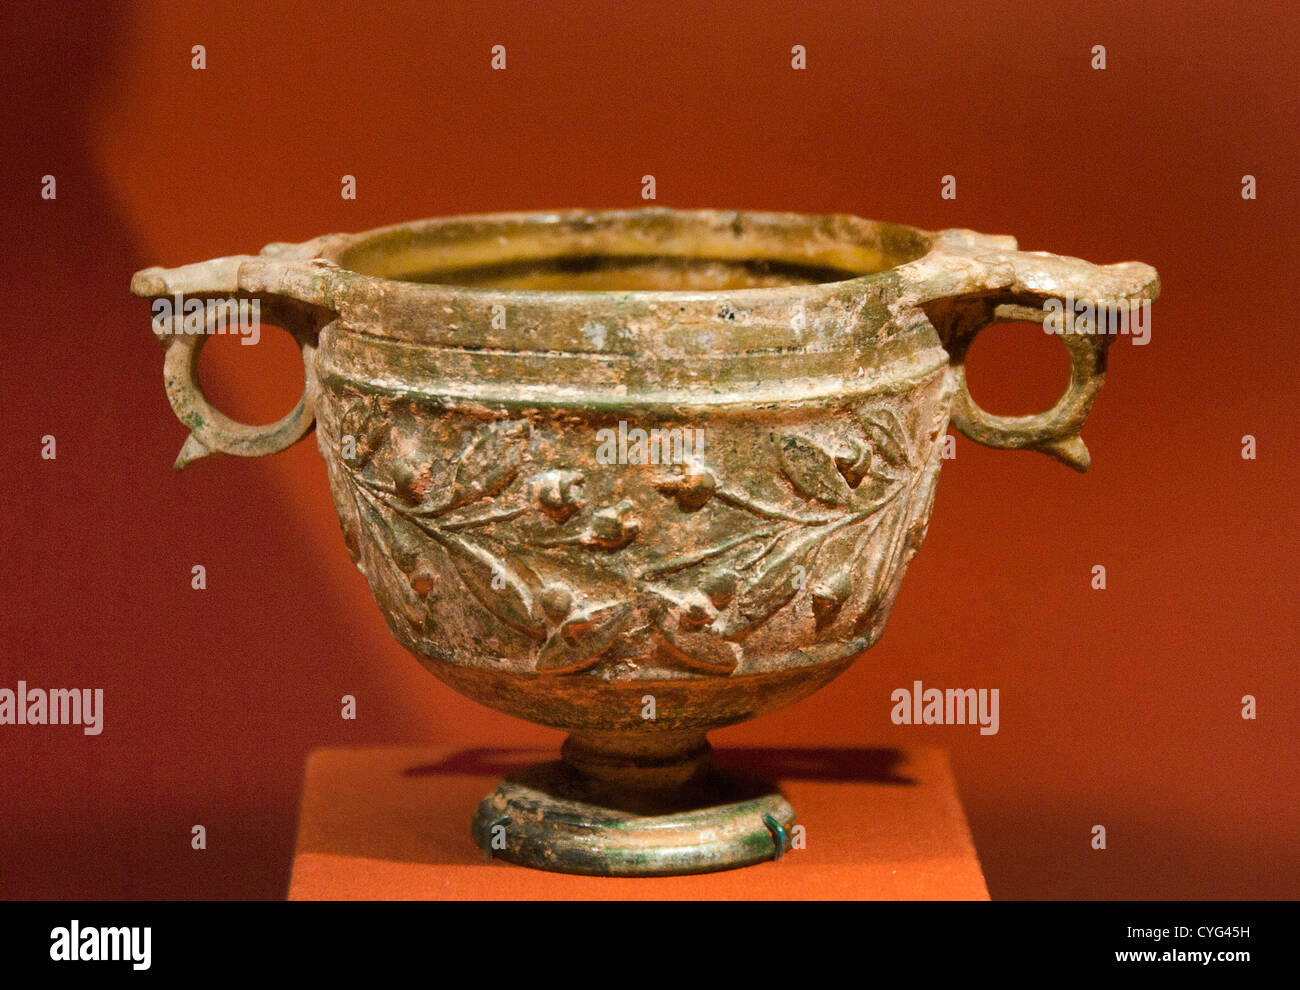 Skyphos footed wine cup with laurel sprays on the body Roman Period A.D. 50 Tarsus Turkey Anatolia Lead glazed terracotta - Stock Image